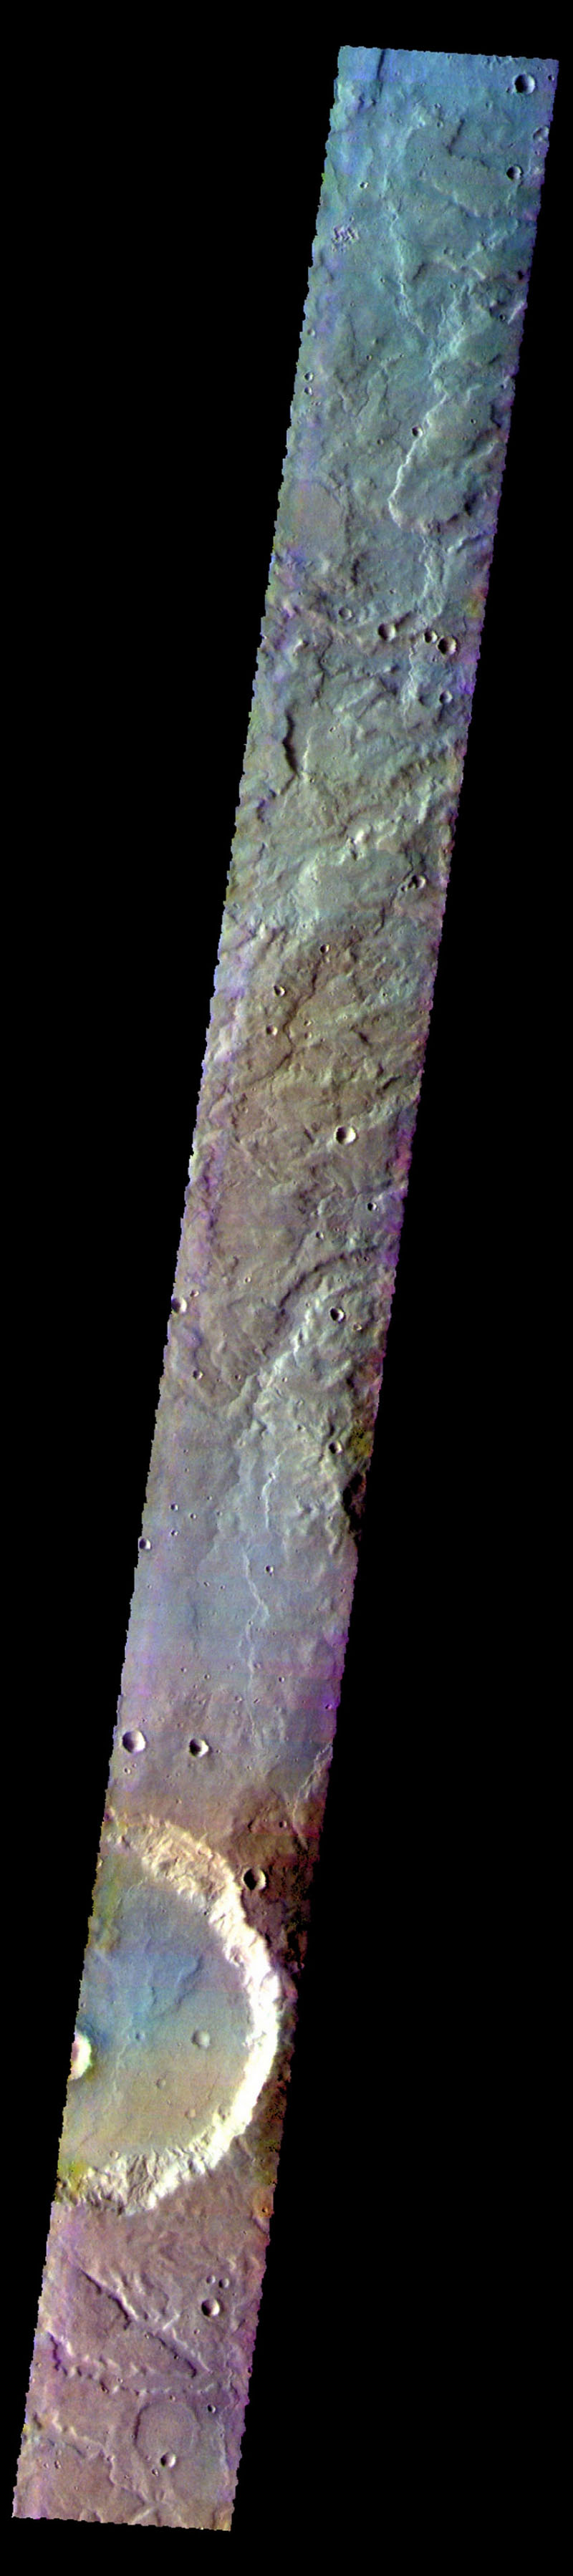 The THEMIS camera contains 5 filters. Data from different filters can be combined in many ways to create a false color image. This image from NASA's 2001 Mars Odyssey spacecraft shows part of the plains and craters of Terra Cimmeria.